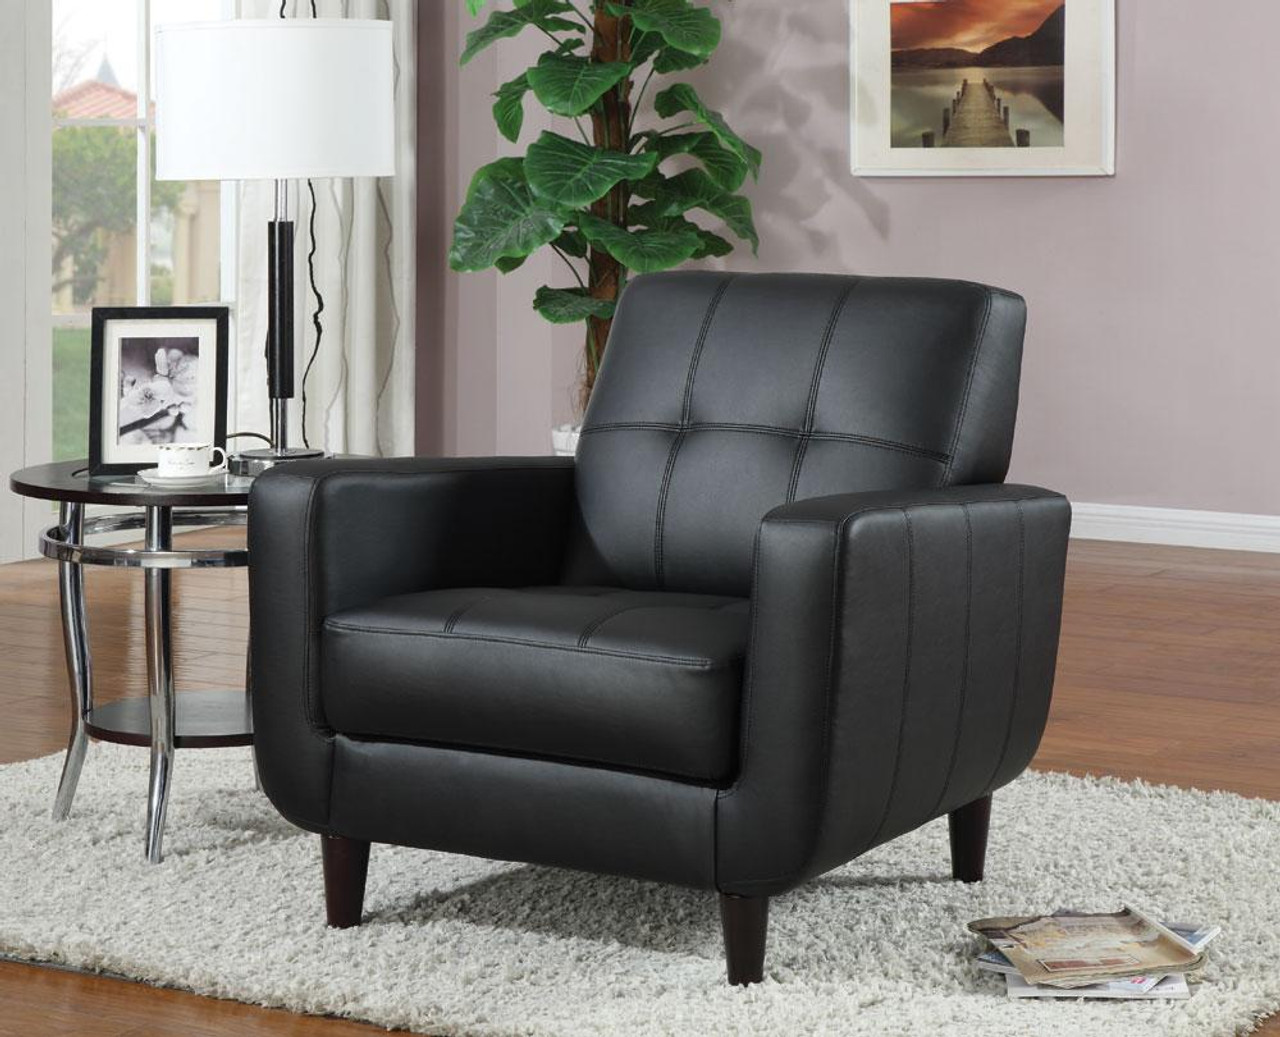 Pleasant Lawton Black Leather Accent Chair Ocoug Best Dining Table And Chair Ideas Images Ocougorg